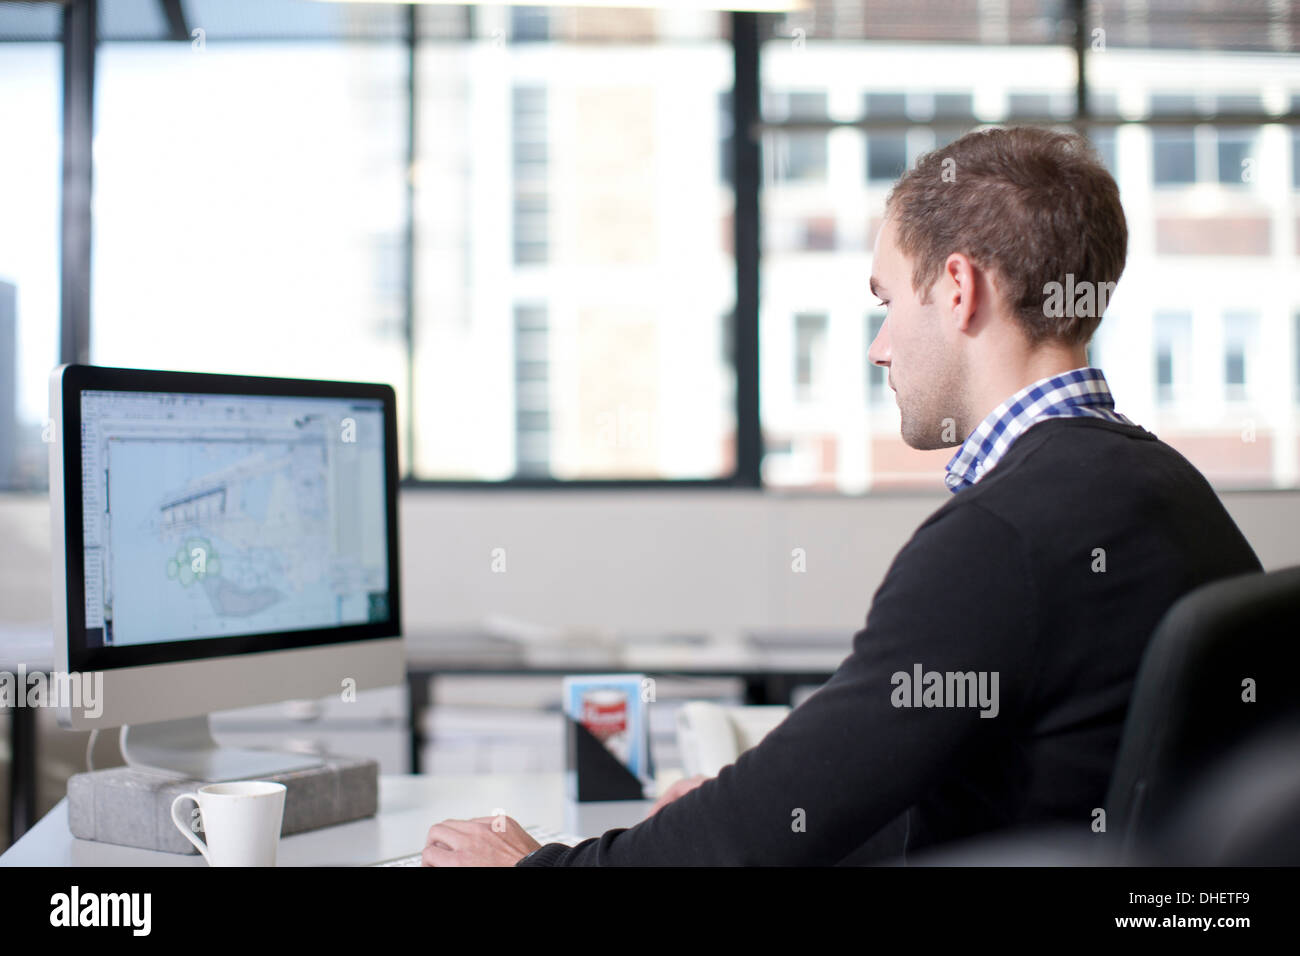 Man using computer in office - Stock Image